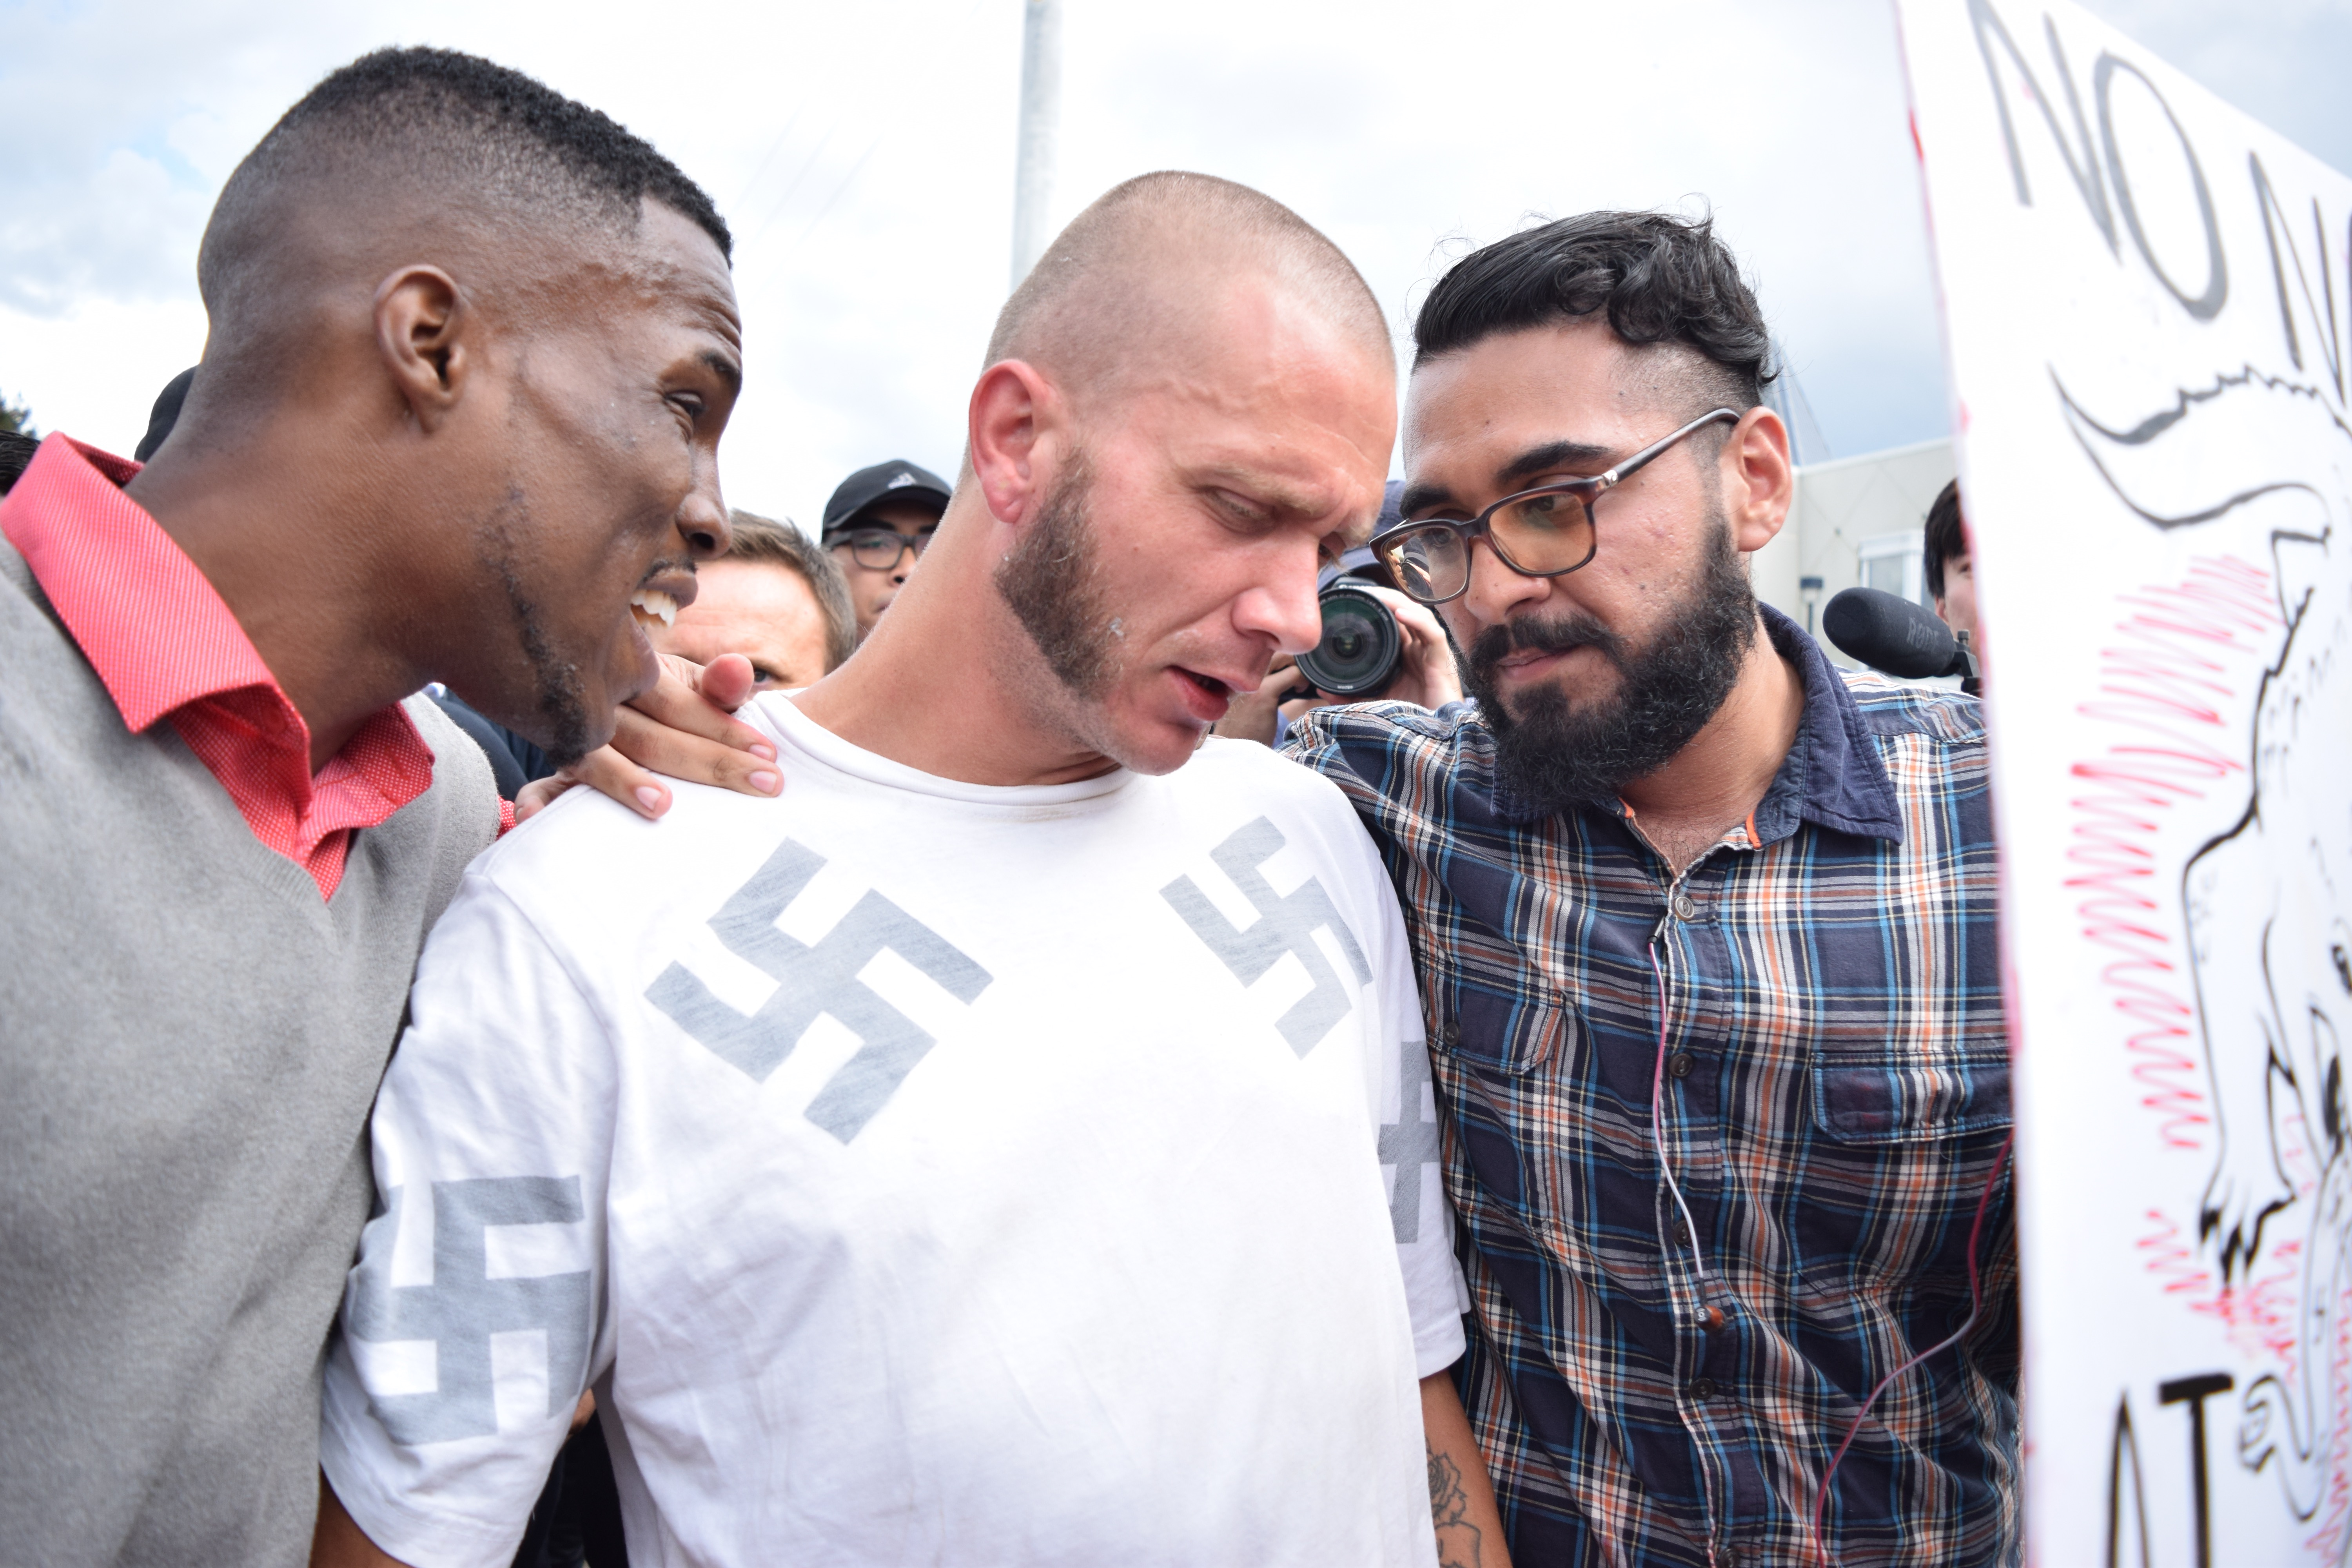 A protester escorted a white nationalist outside Richard Spencer's talk: 'He just smiled and called me a racist slur'